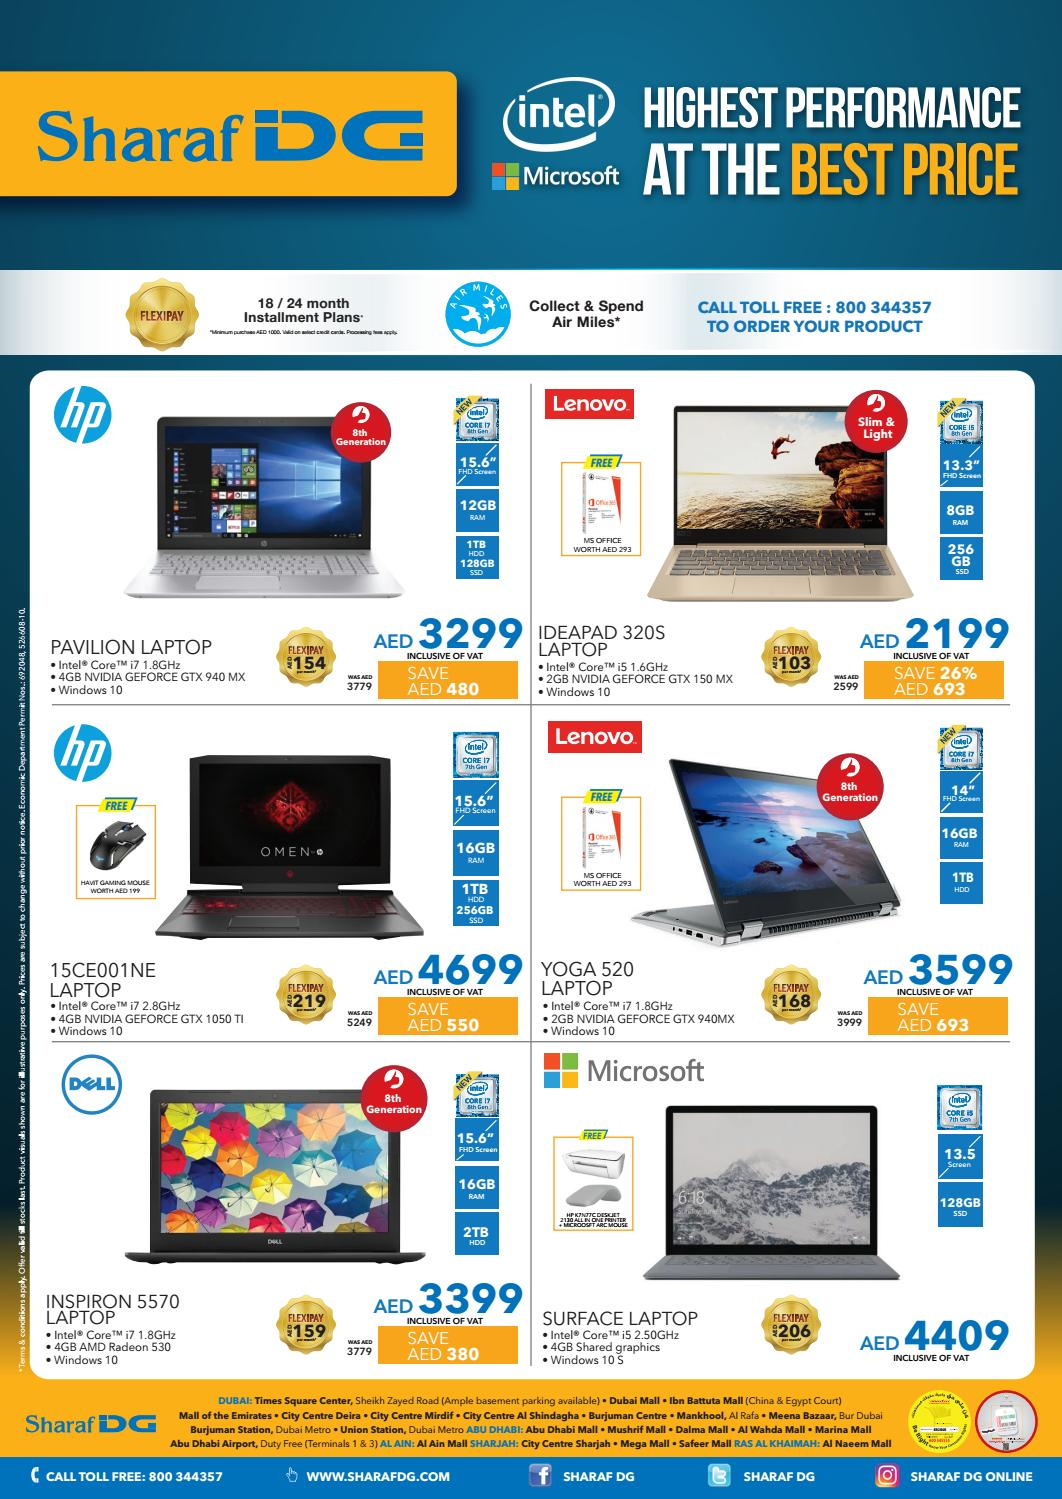 SharafDG Laptop Offers in UAE - Sharafdg Promotions